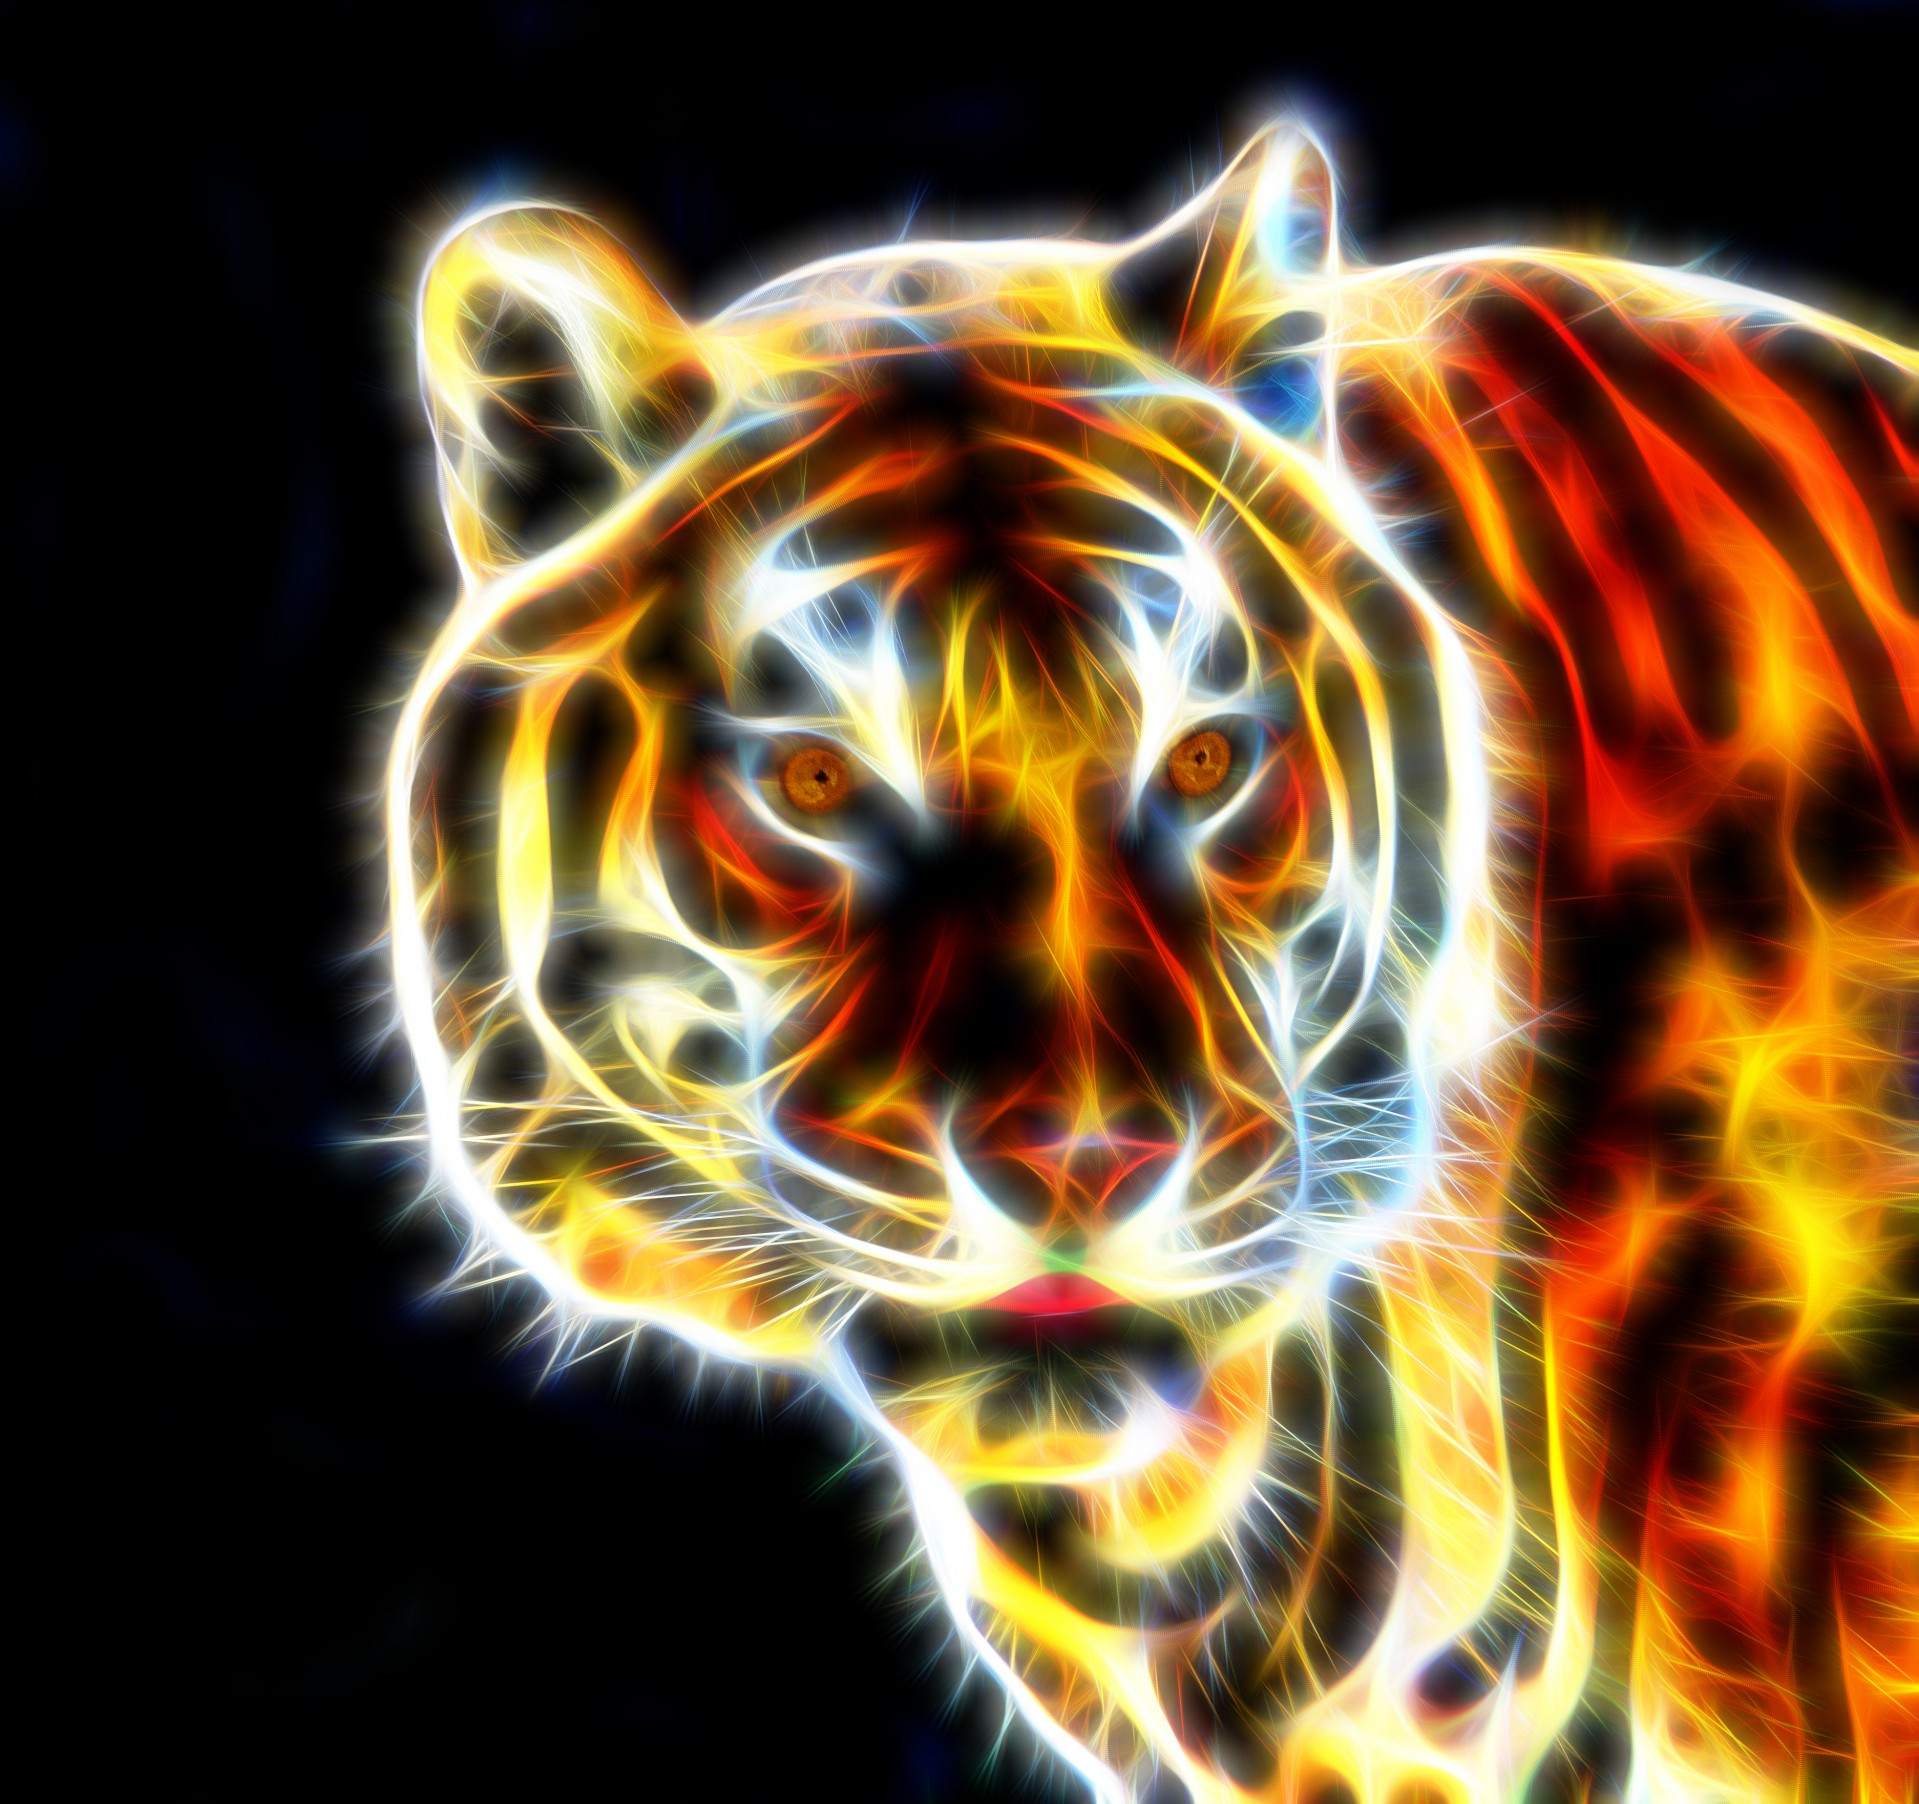 3d Colour Wallpaper Free Download Tiger Fractal Wire Flame Free Stock Photo Public Domain